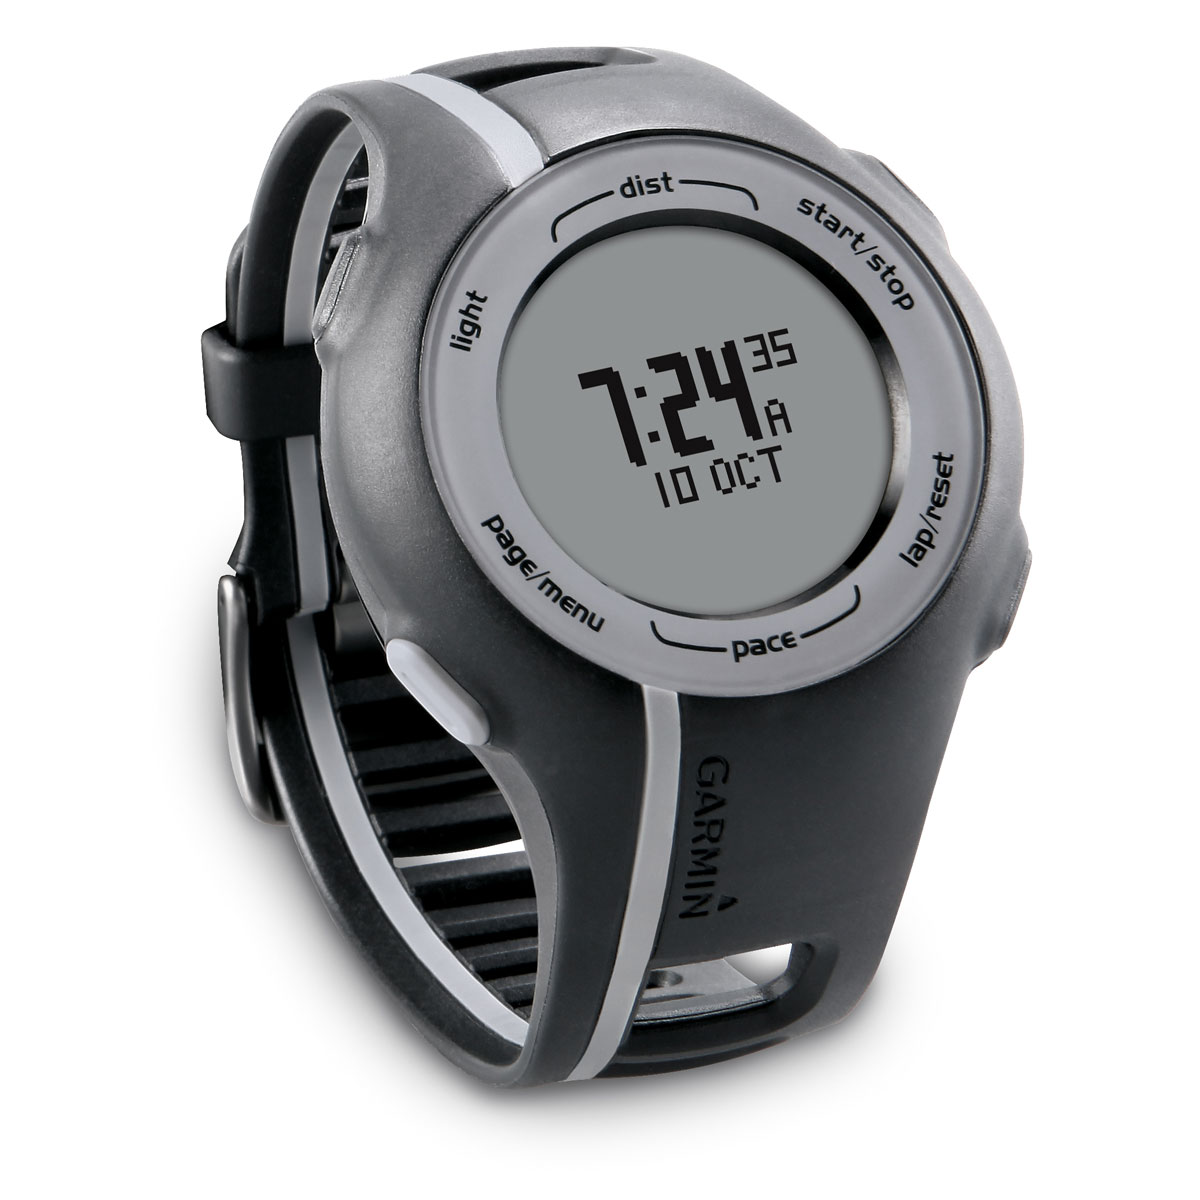 garmin forerunner 110 montre running garmin sur. Black Bedroom Furniture Sets. Home Design Ideas